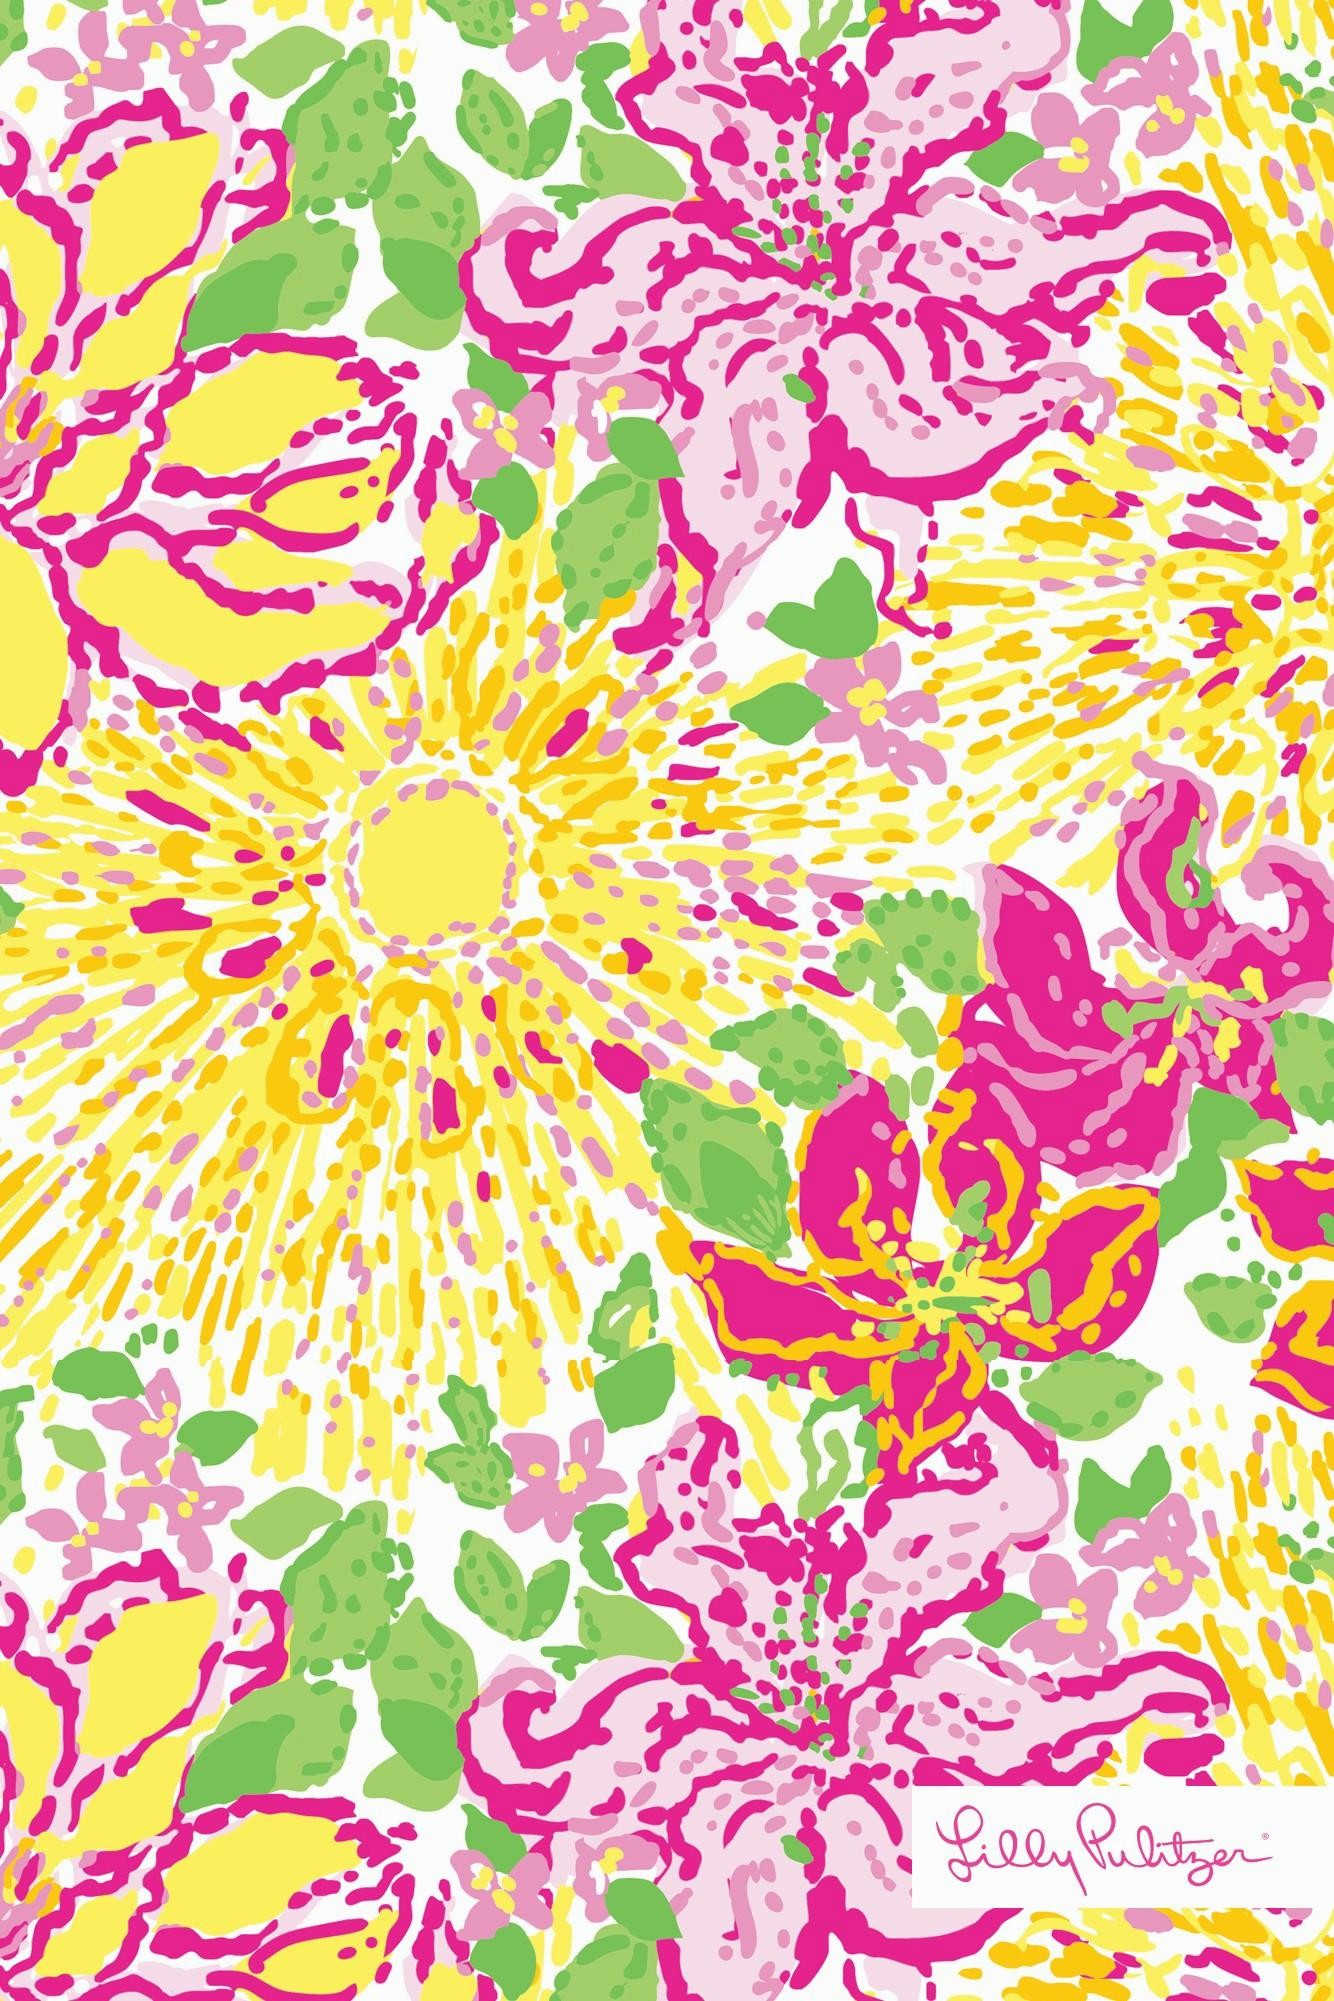 Lilly-Pulitzer-A-Story-Written-in-the-Sun-